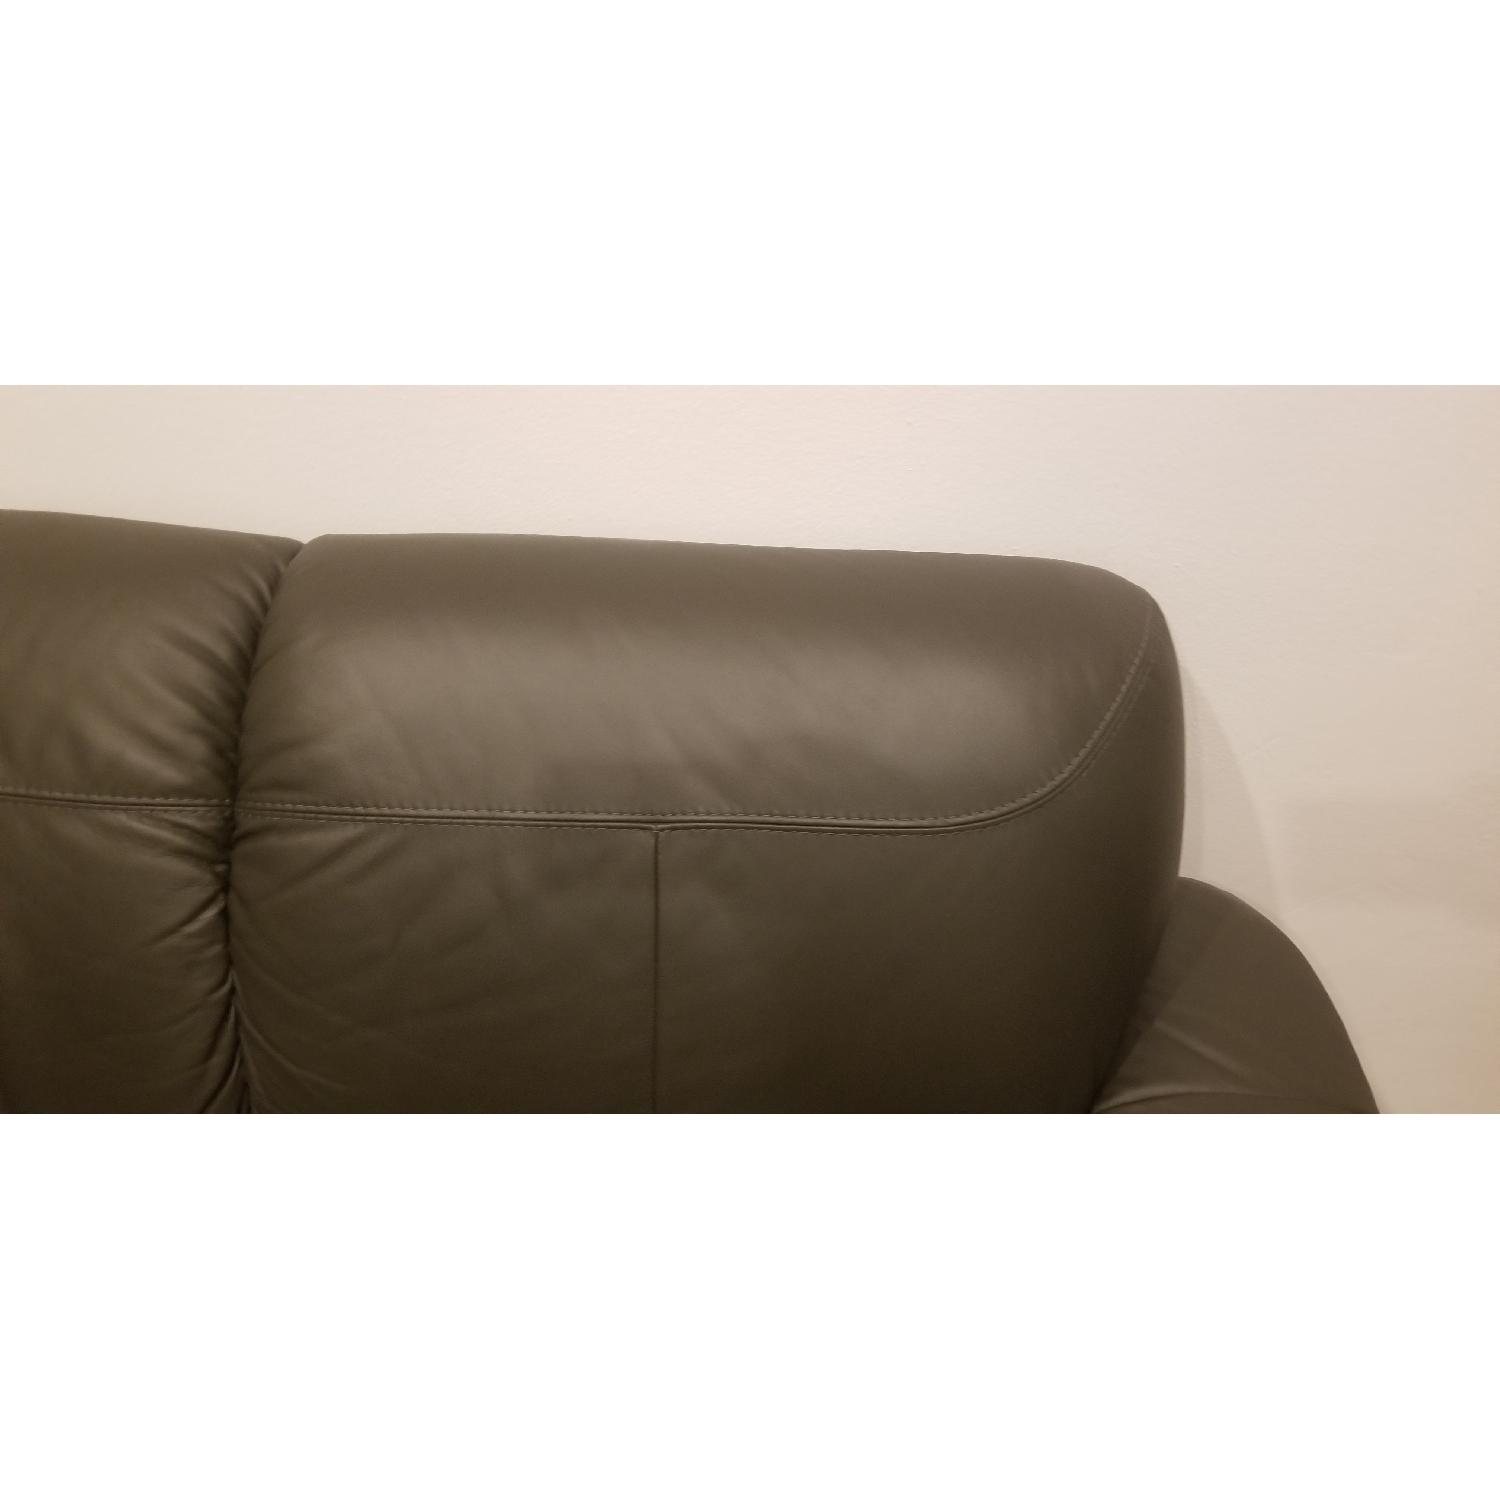 Ikea Timsfors Faux Leather Sectional Sofa - image-7